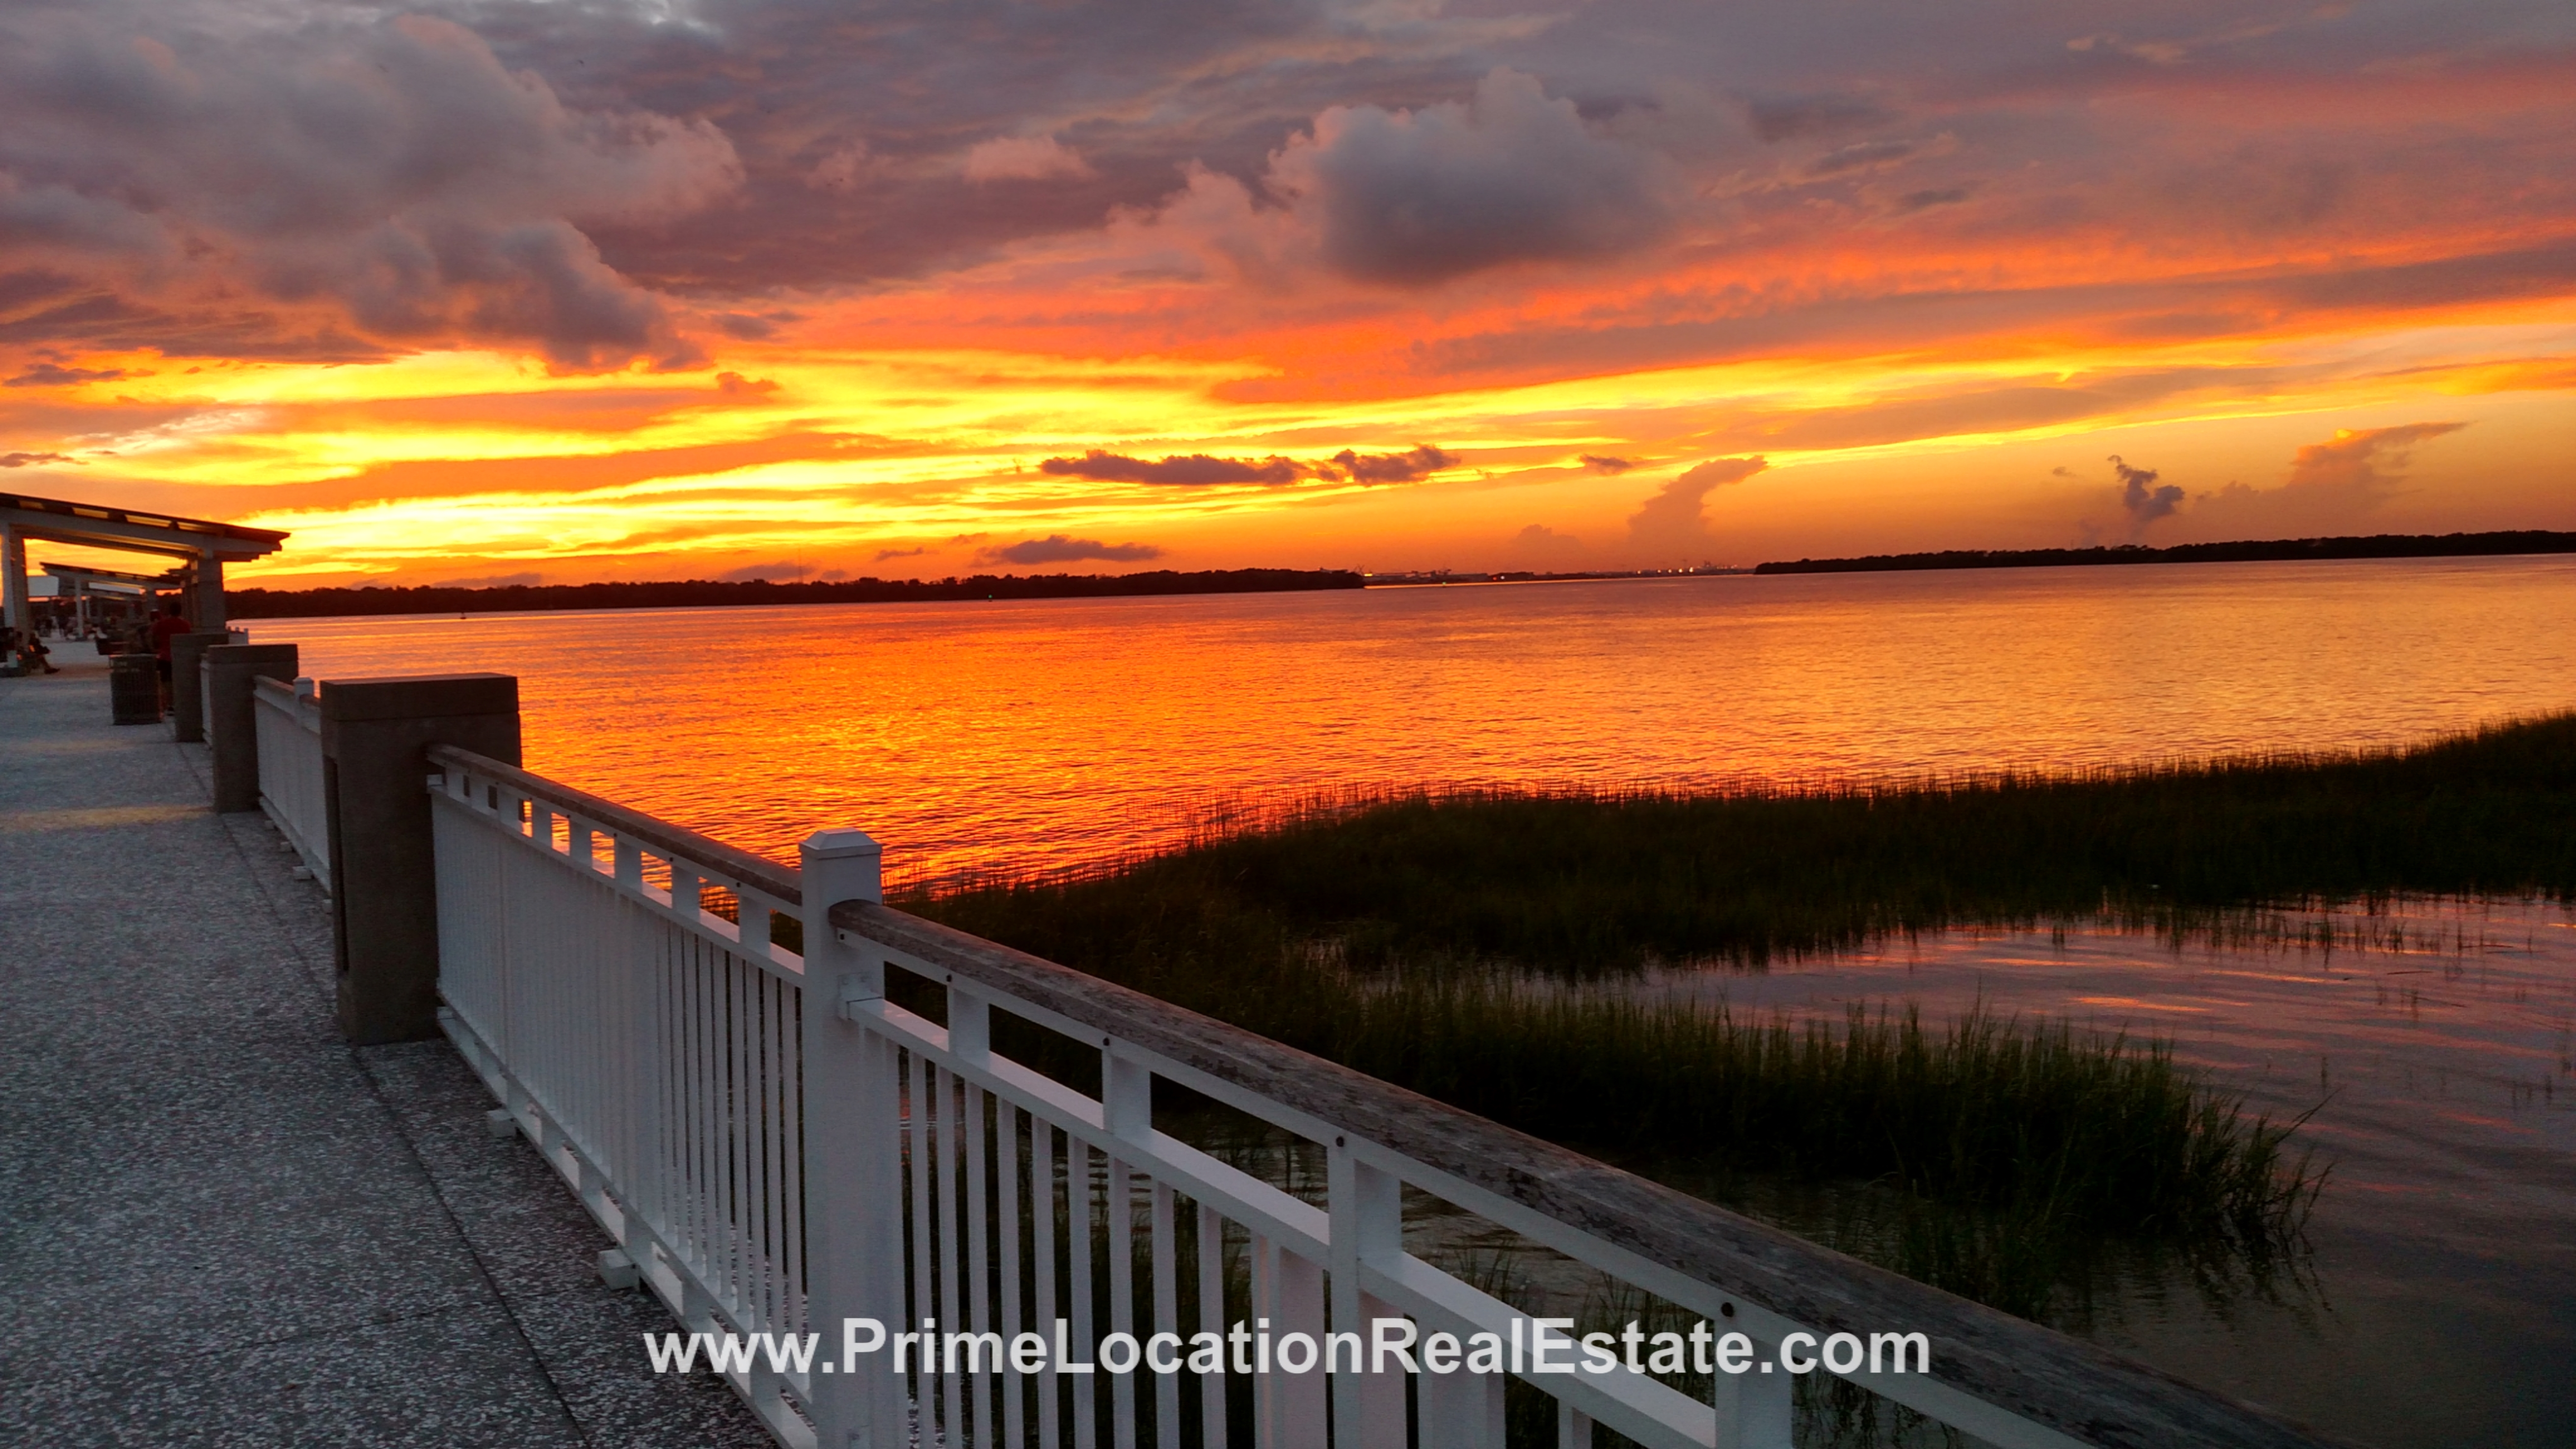 Pier Sunset in Mt Pleasant  - Charleston SC